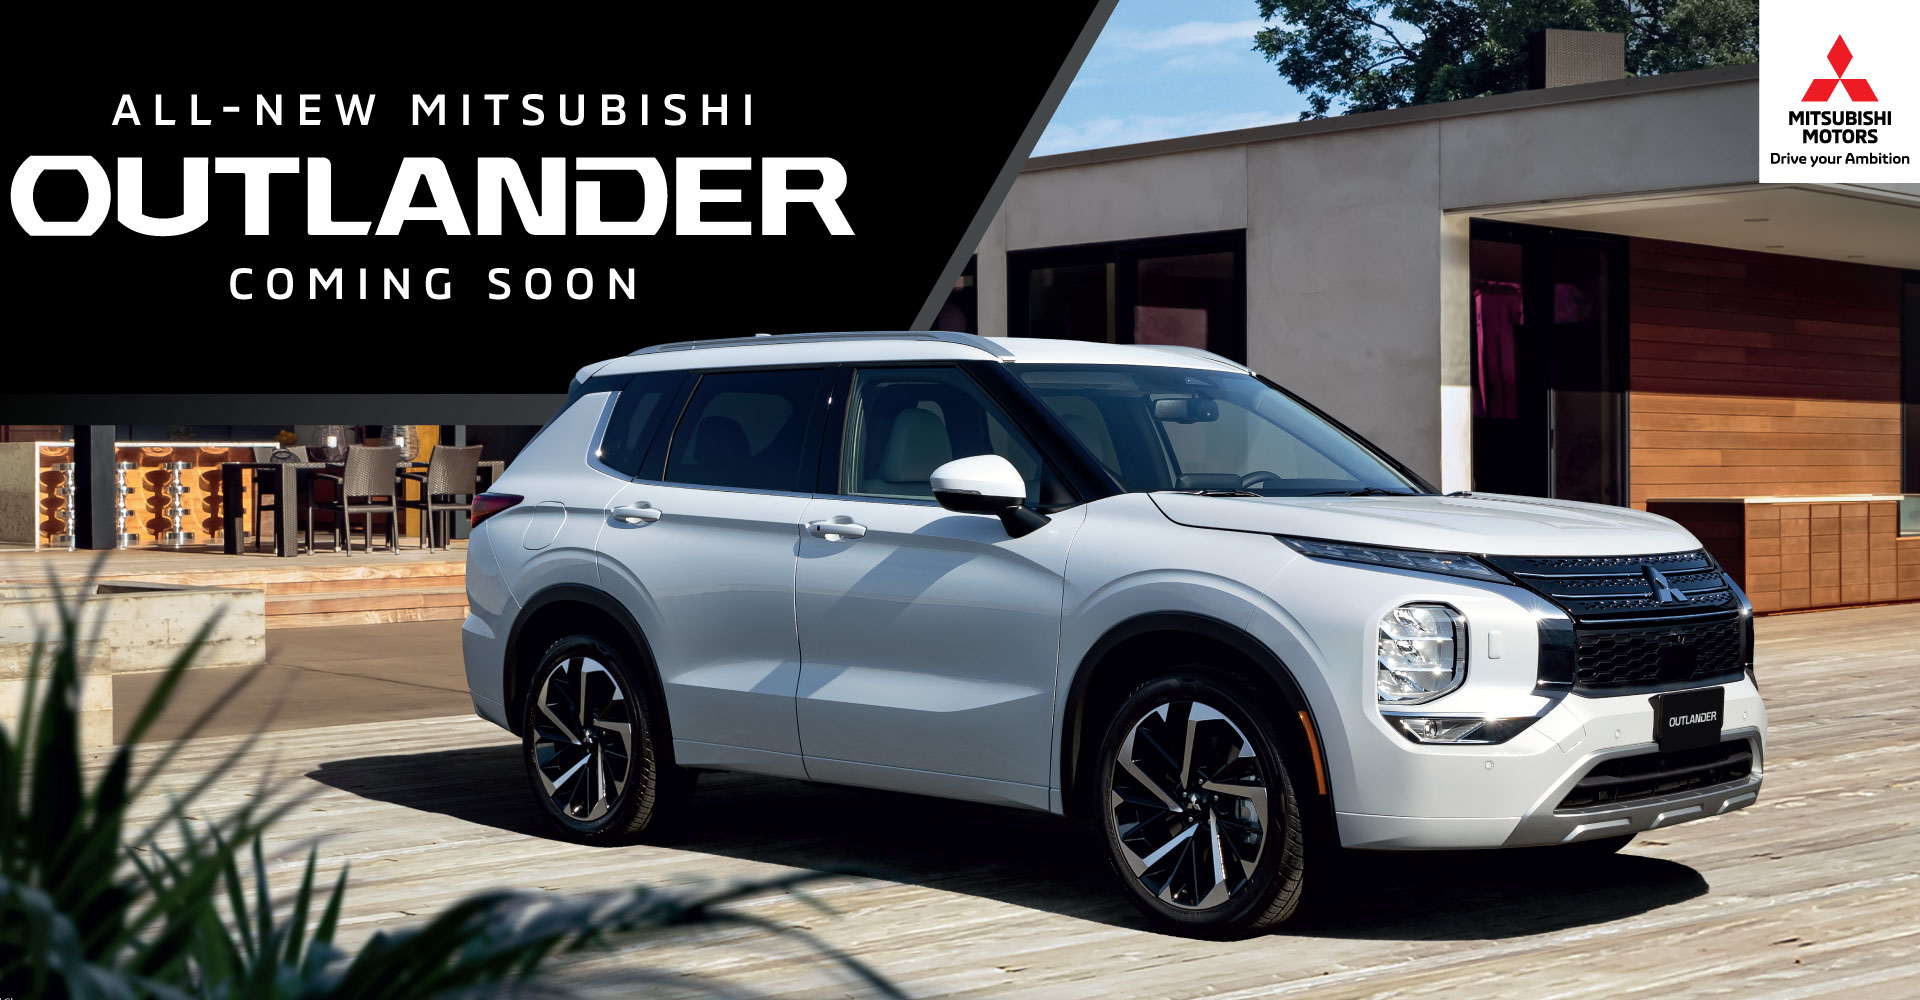 ALL NEW MITSUBISHI OUTLANDER MY22 ARRIVING SOON!